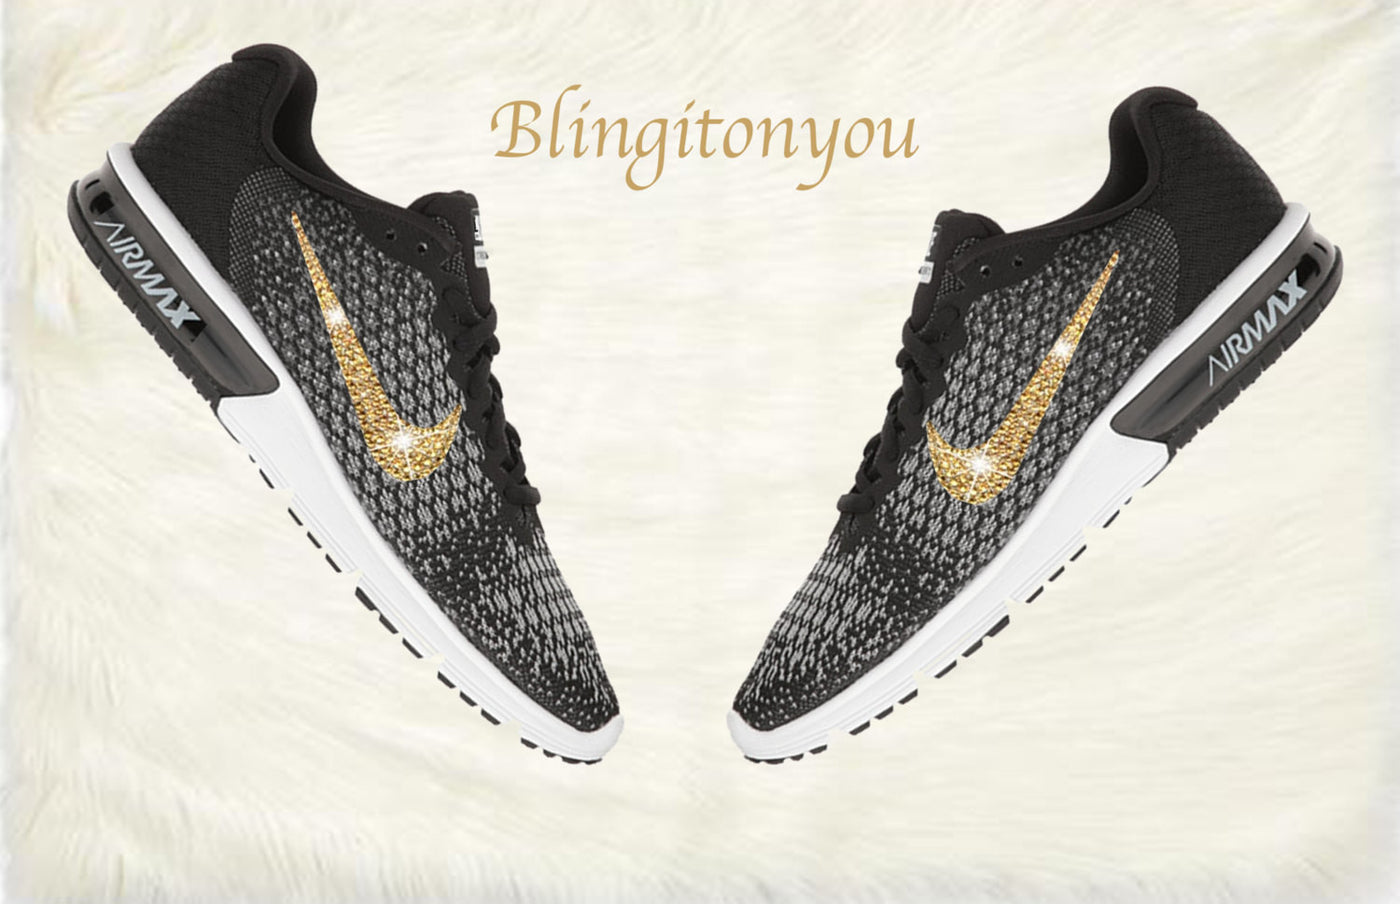 Swarovski Nike Air Max Sequent 2 Shoes Black Blinged Out With Gold  Swarovski Crystals - Nike ... c0f644ee0a6f